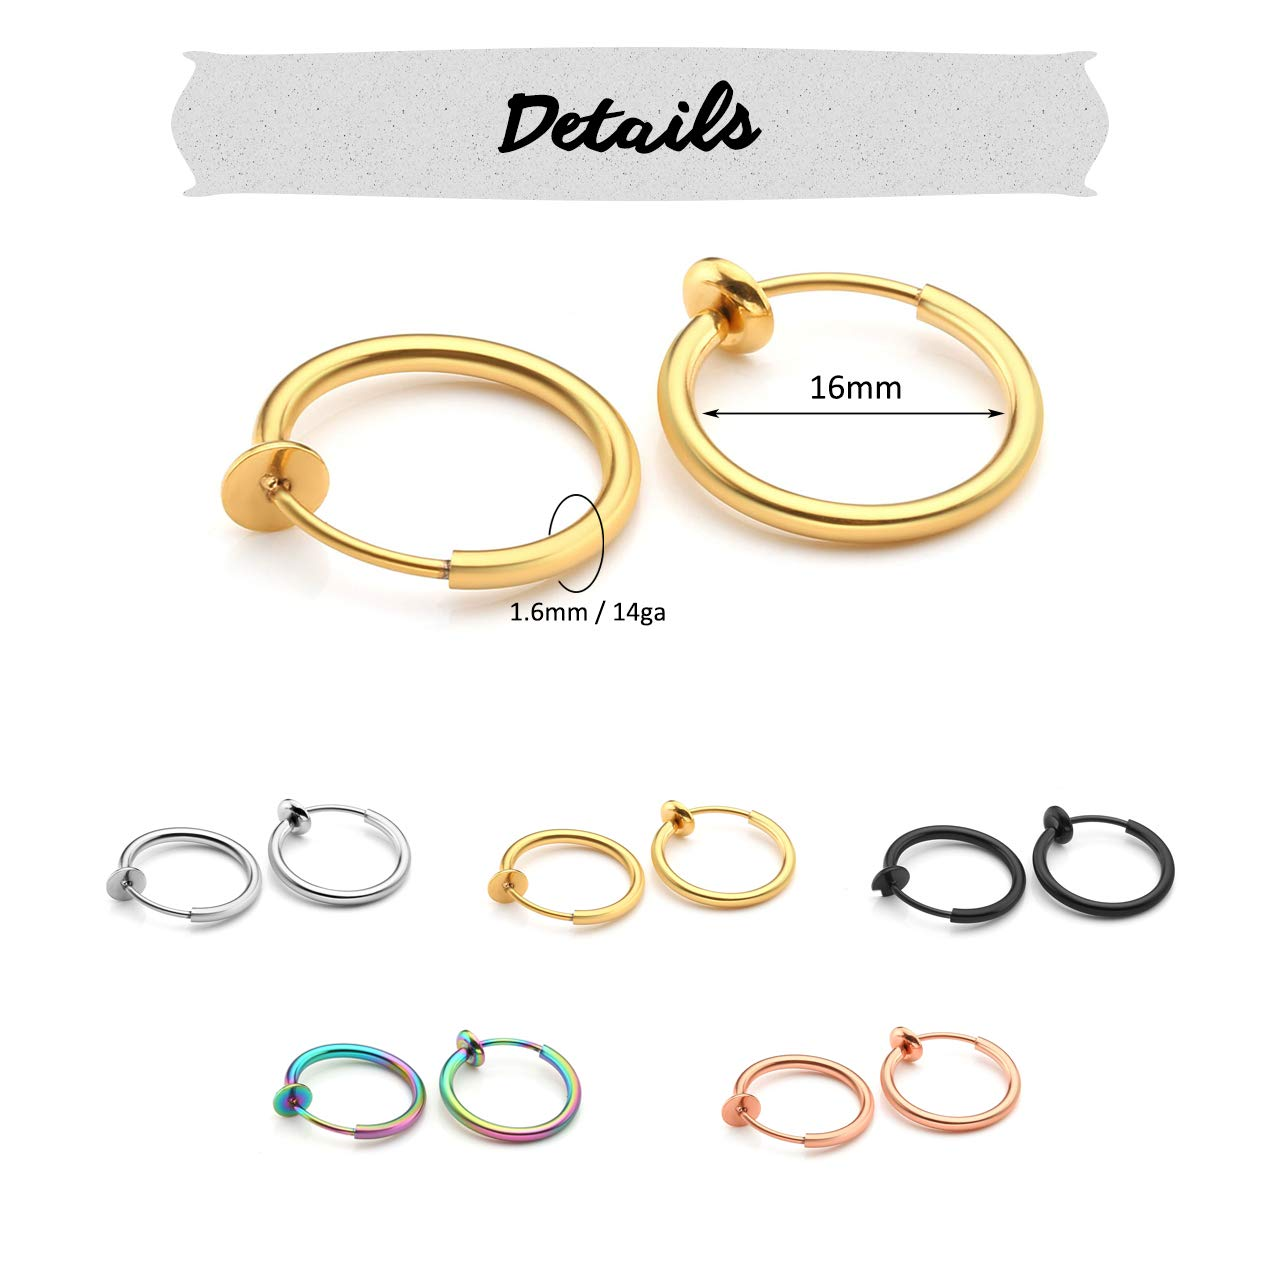 Clip On Earrings Fake Septum Cartilage Earrings Lip Ring Non Piercing Hoop Faux Body Piercing Jewelry 10-16mm PiercingJ 10pcs Mixed Color Stainless Steel 14G Fake Nose Ring Spring Hoop